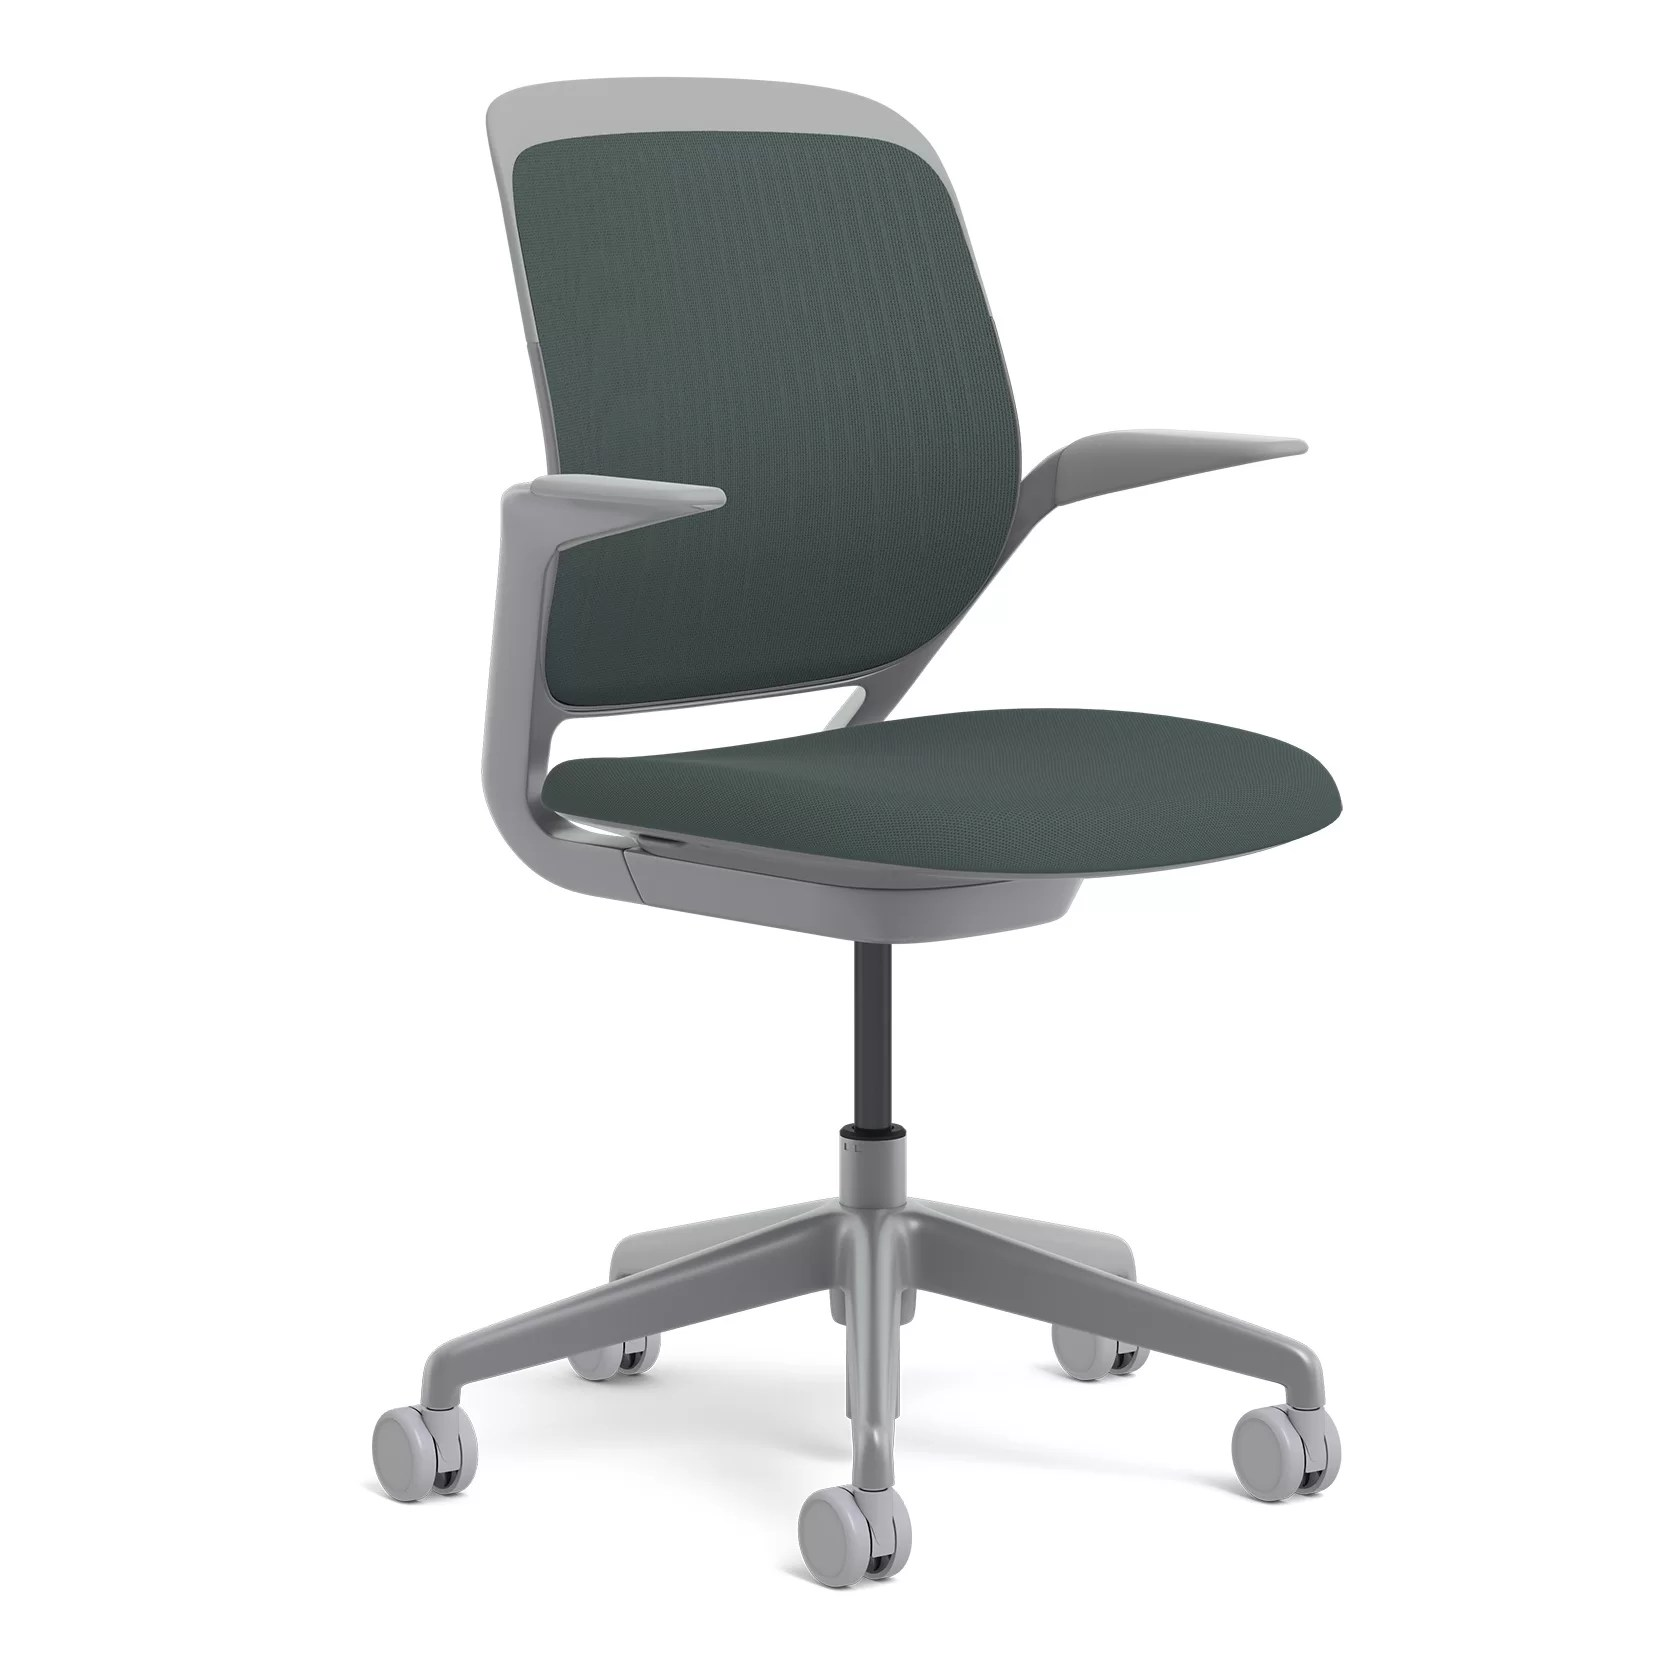 Steelcase Desk Chair Steelcase Cobi Mid Back Desk Chair And Reviews Wayfair Supply